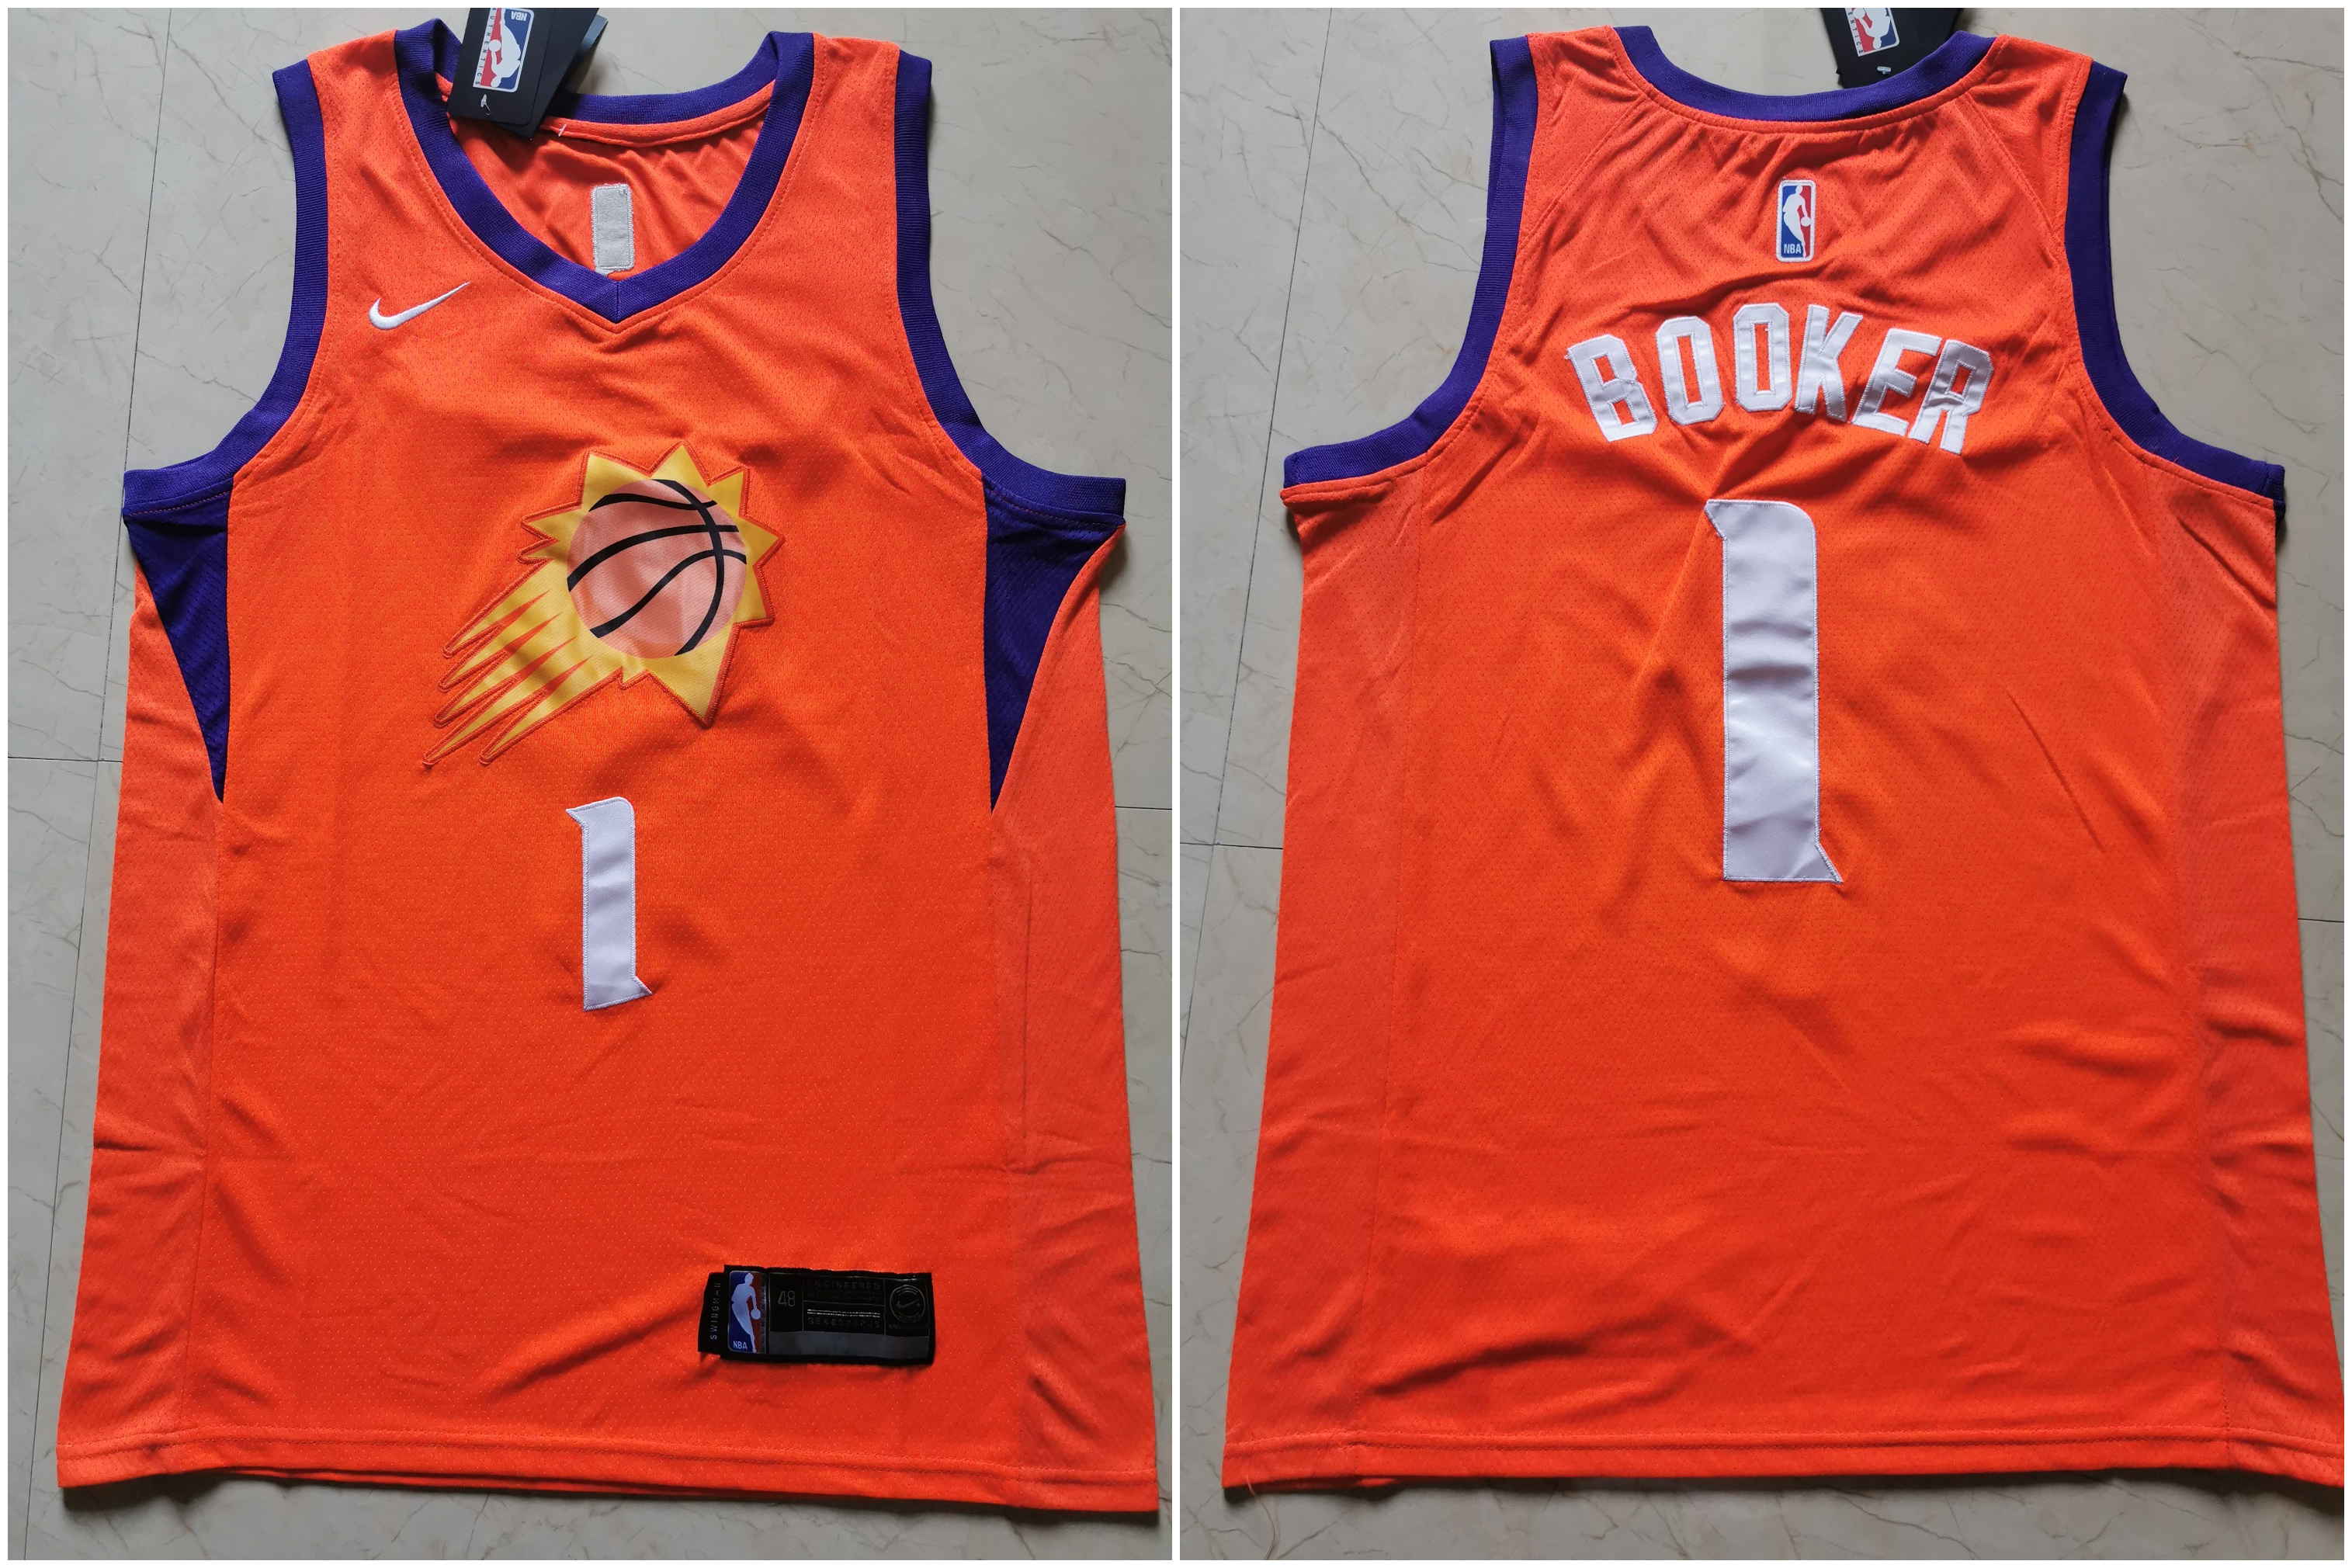 Suns 1 Devin Booker Orange Nike Swingman Jersey